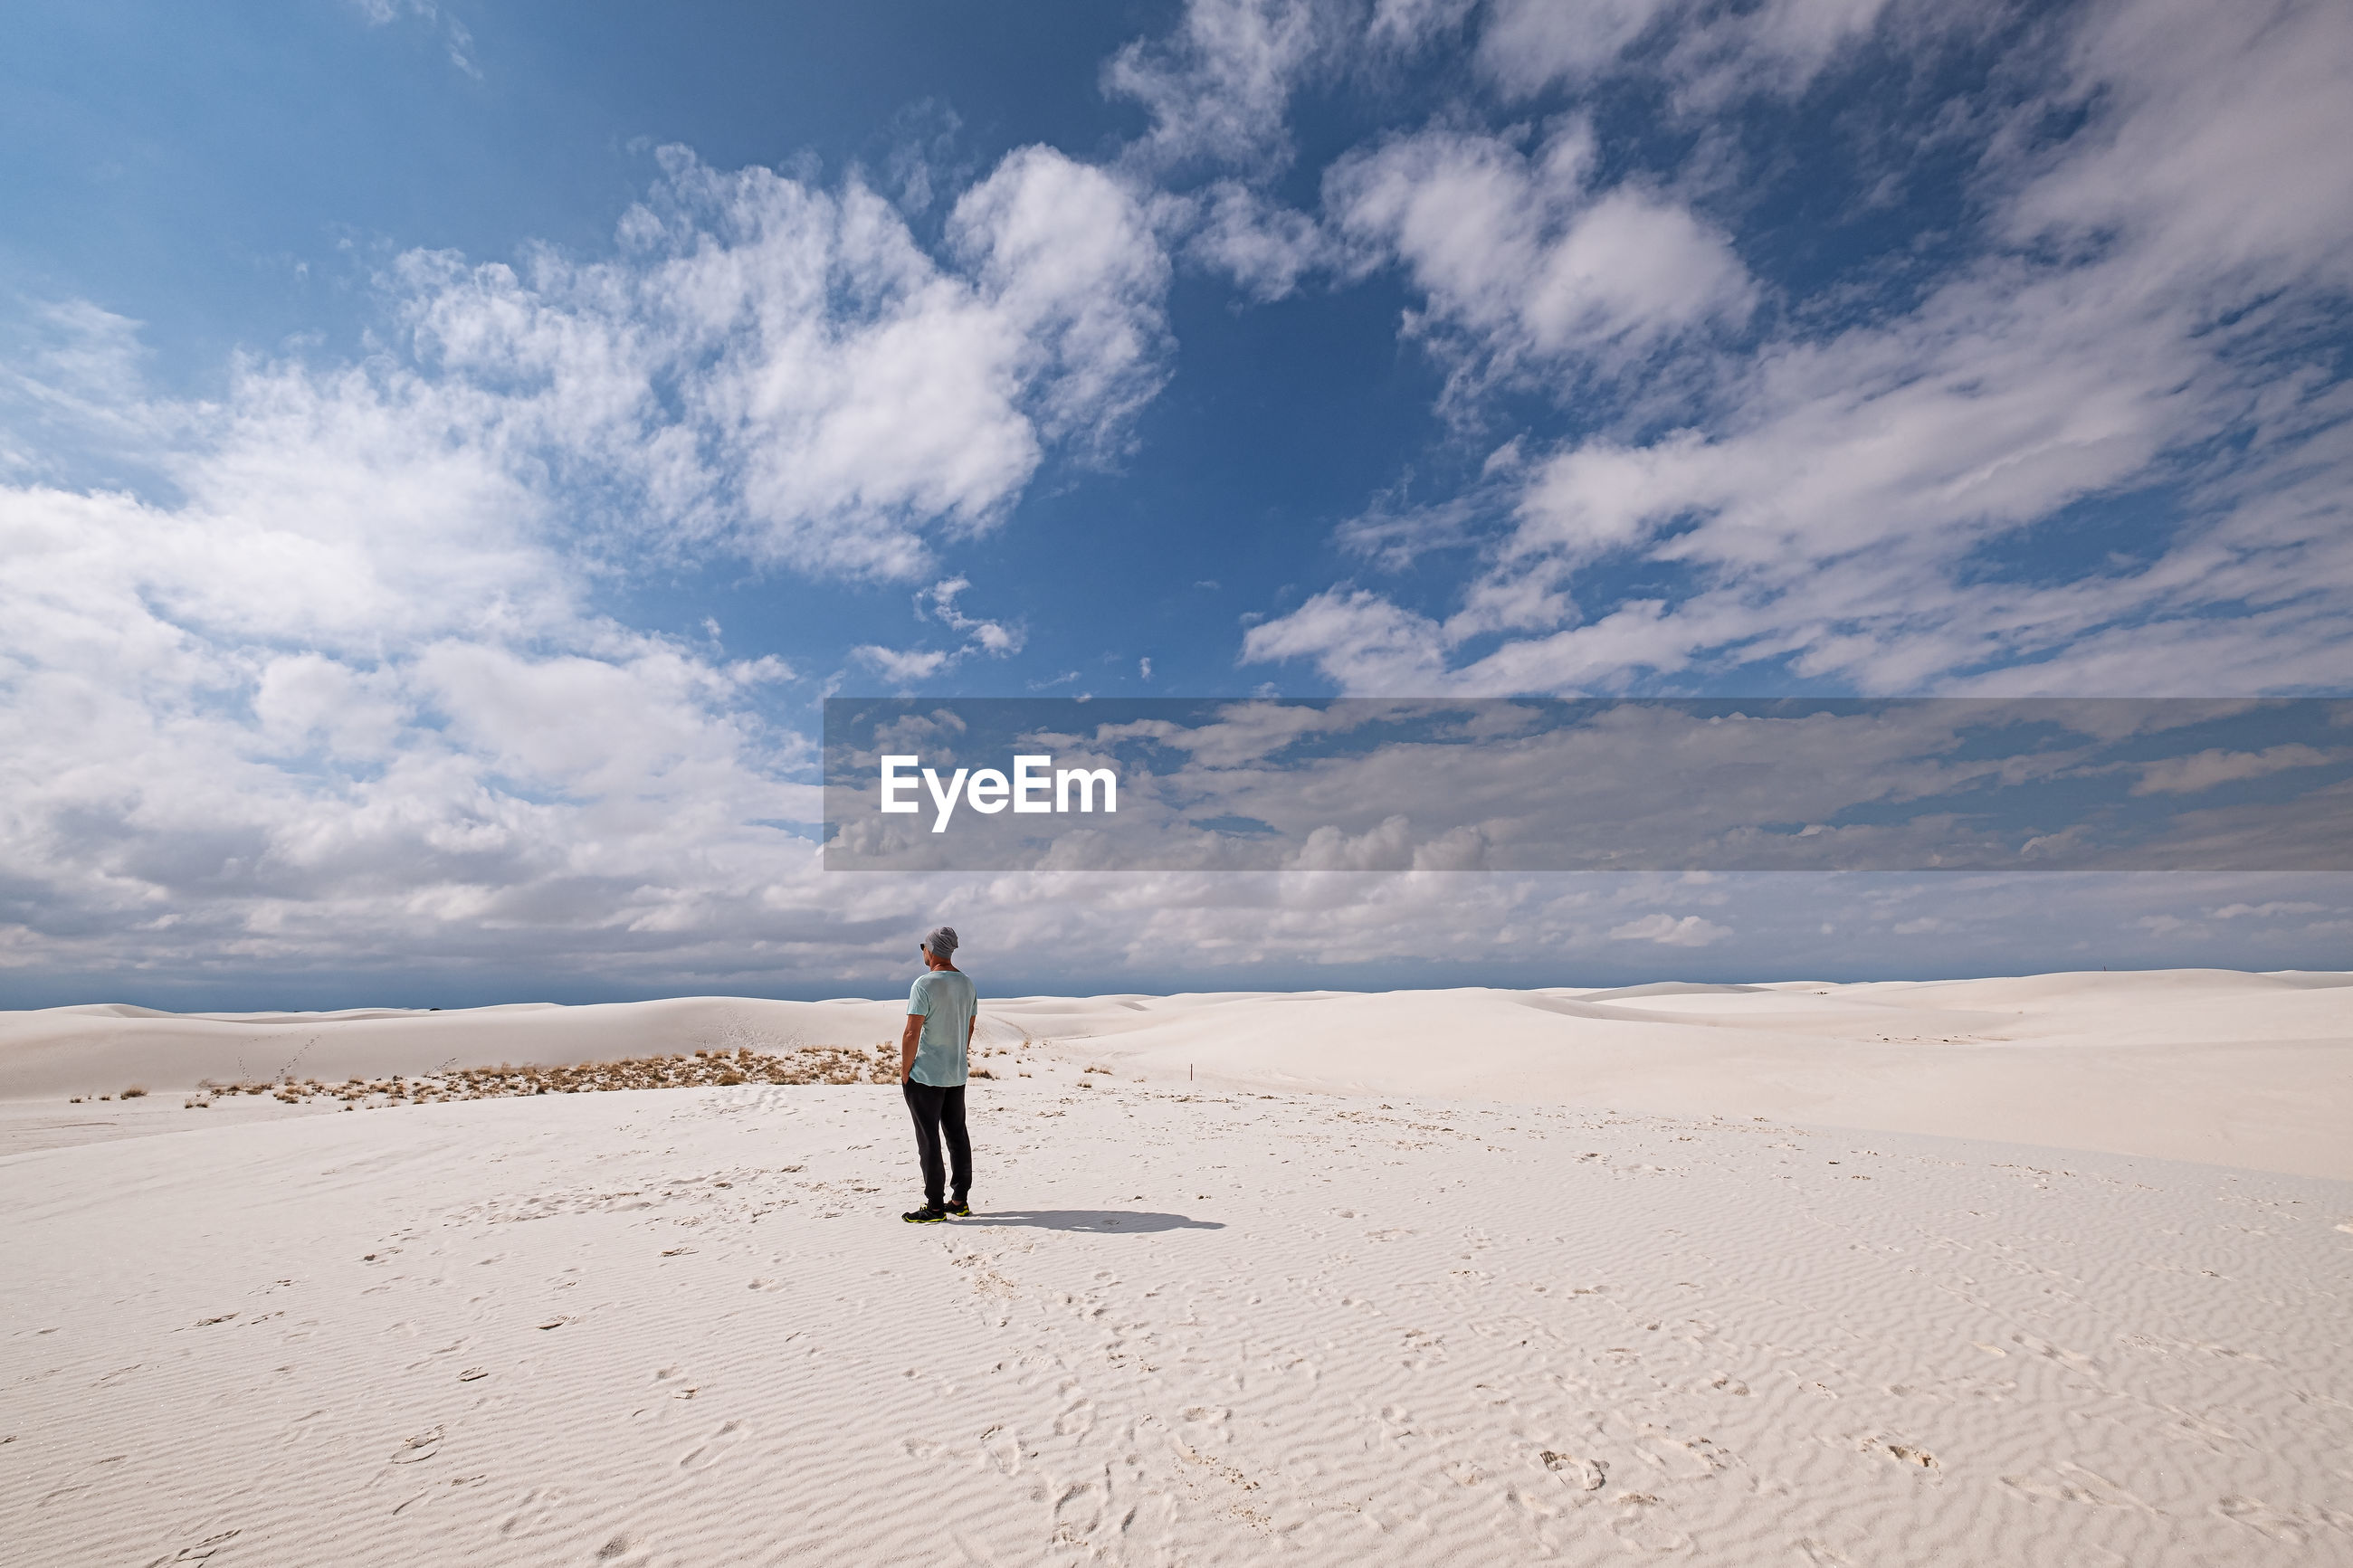 Rear view of man on sand at desert